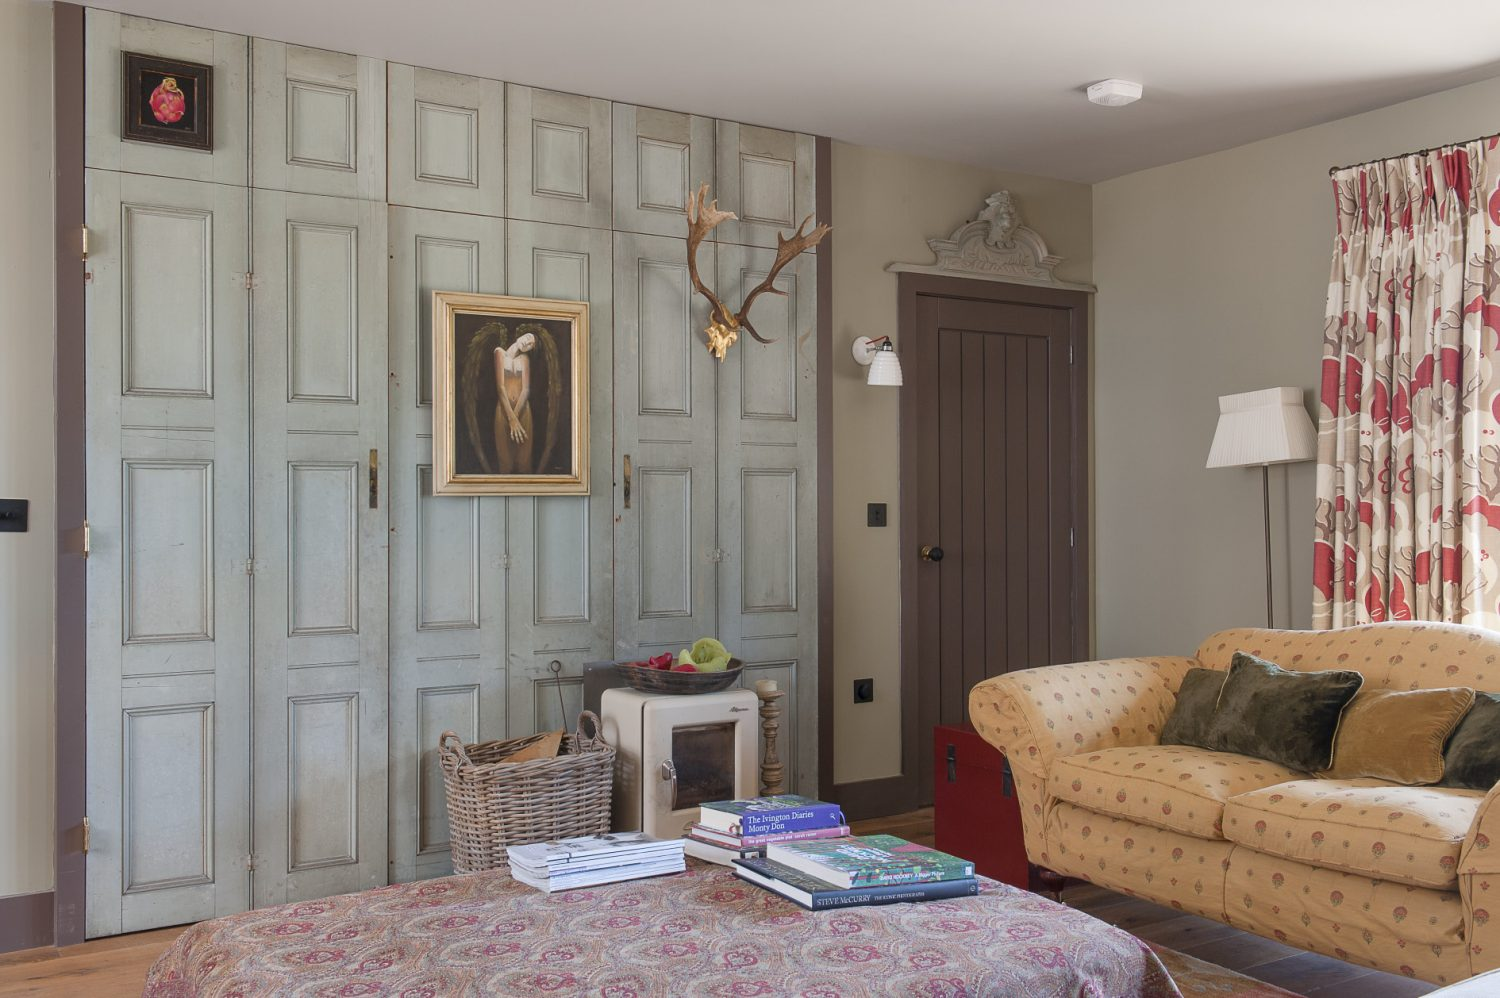 In the drawing room a set of former French room dividers, that cleverly conceal the television, sport a fetching pair of golden antlers